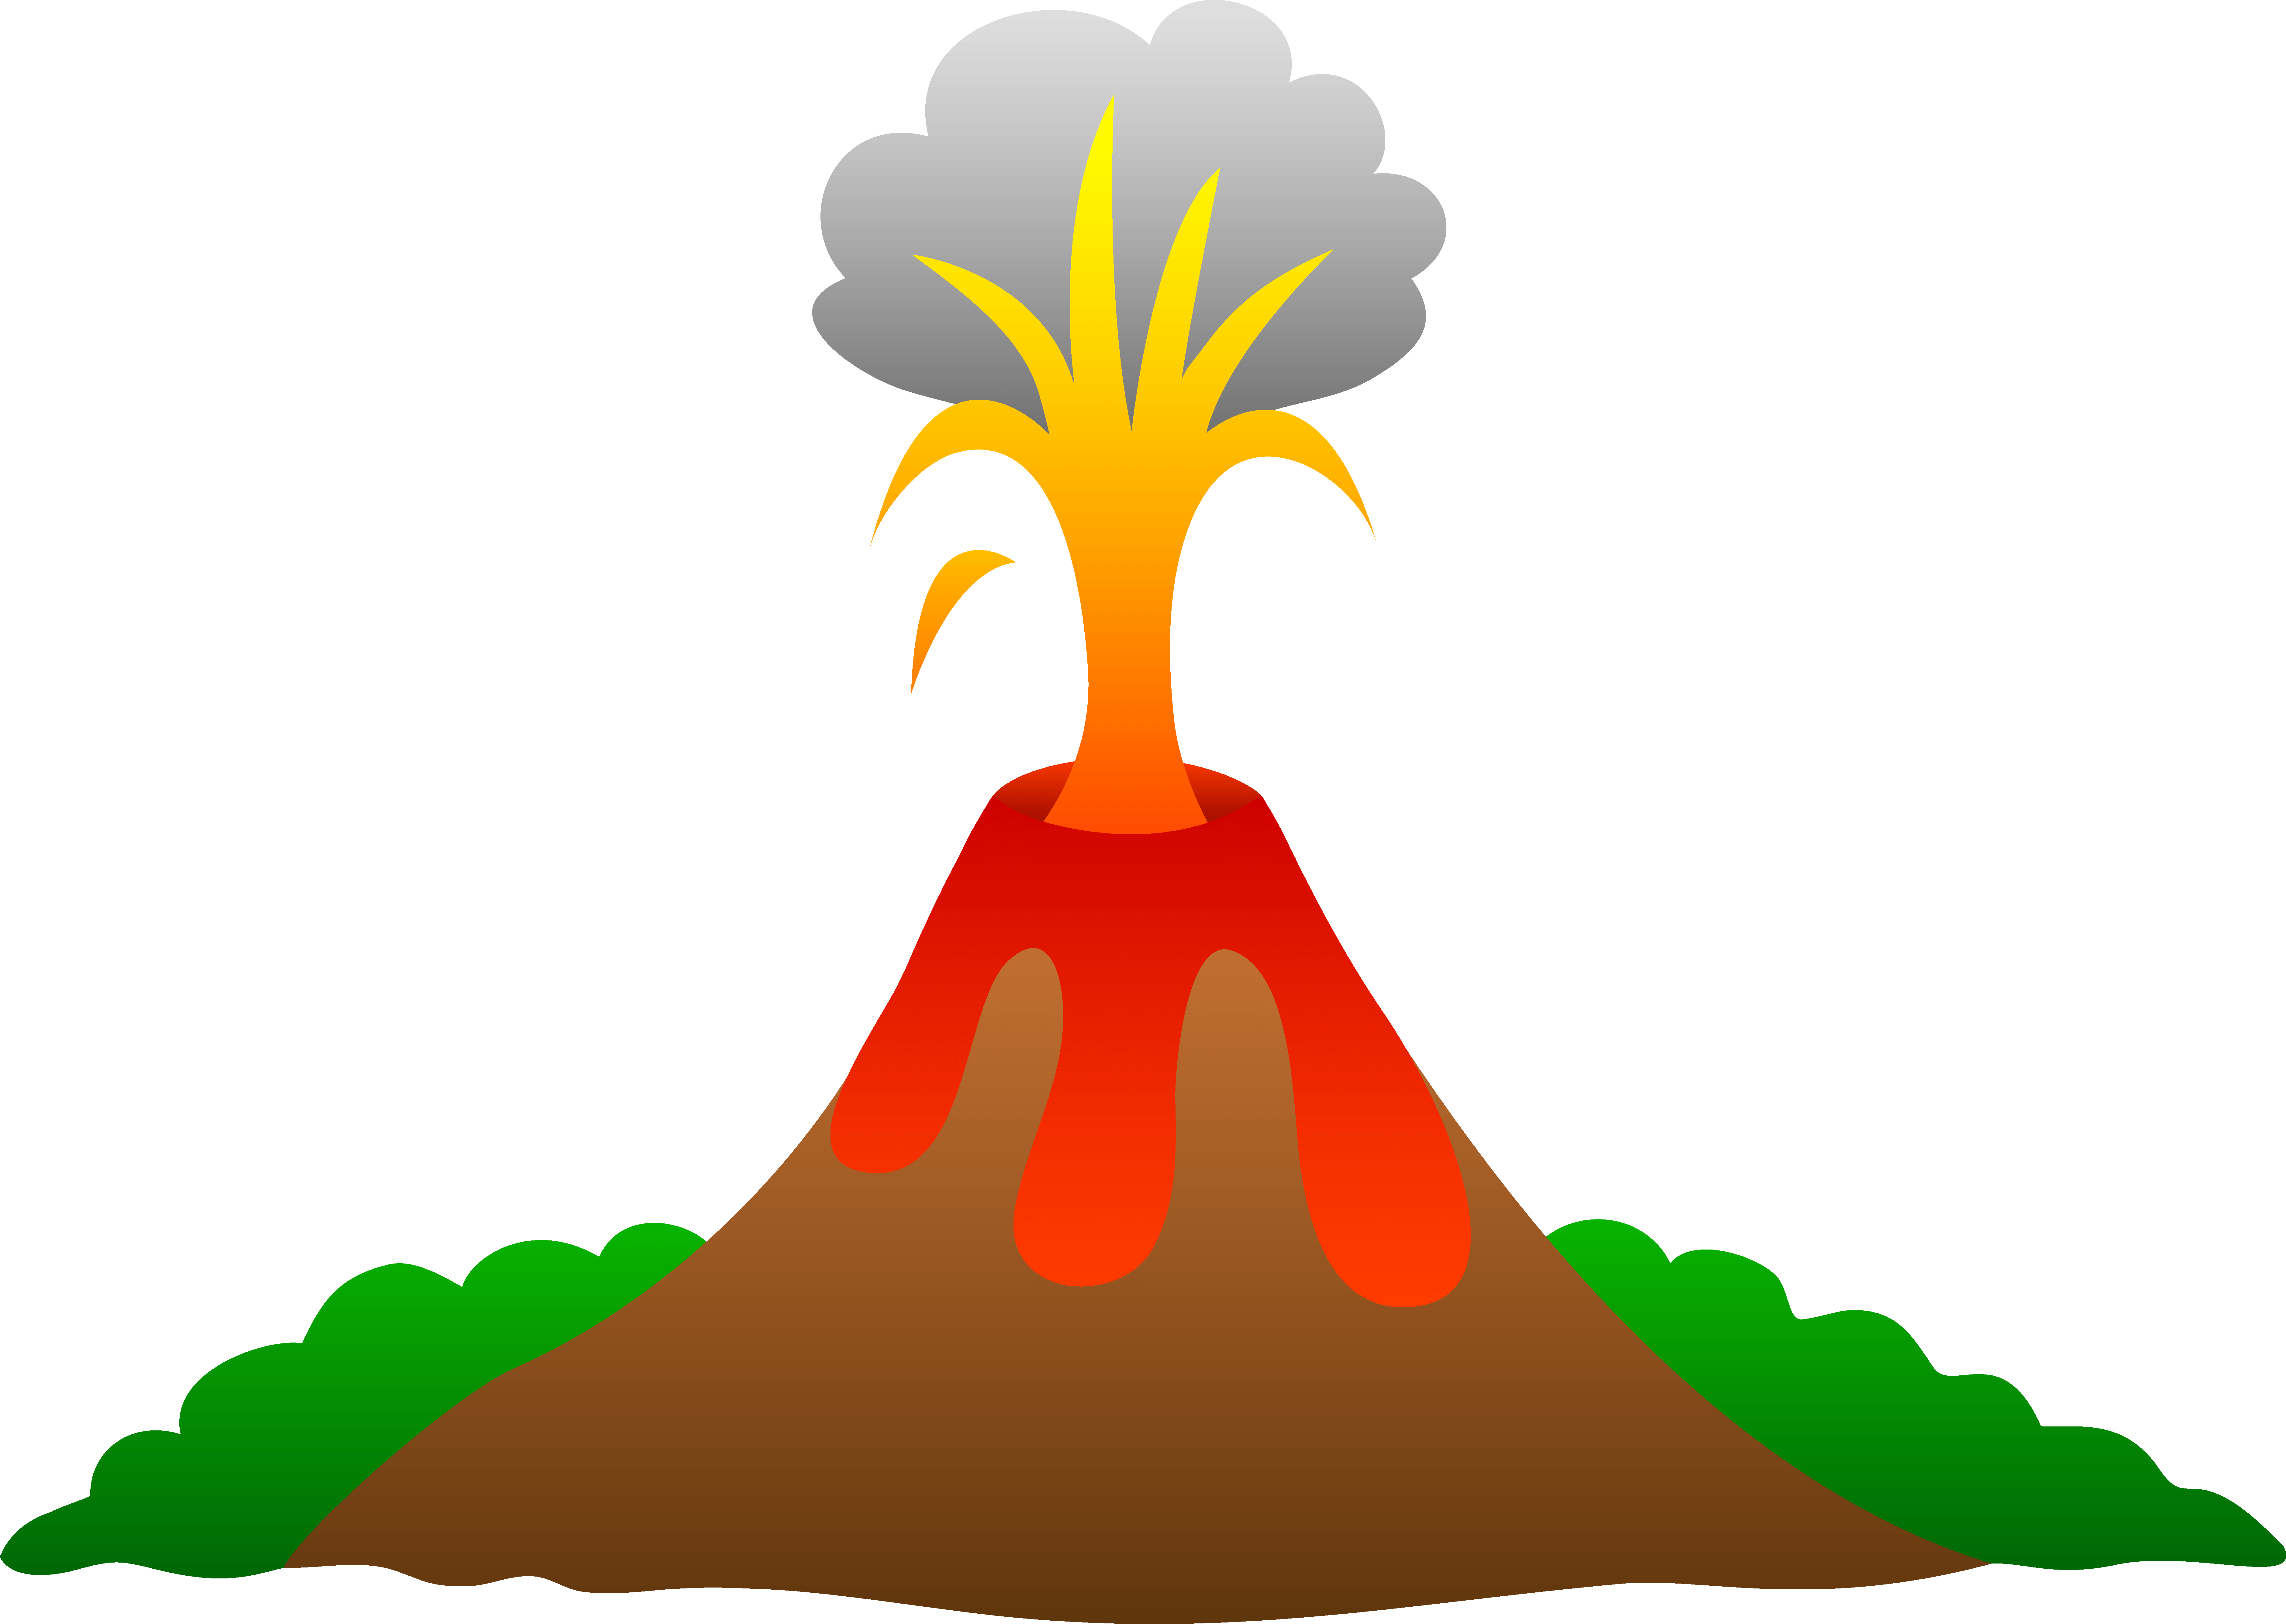 Magma drawing volcanic mountain. Coming out of a